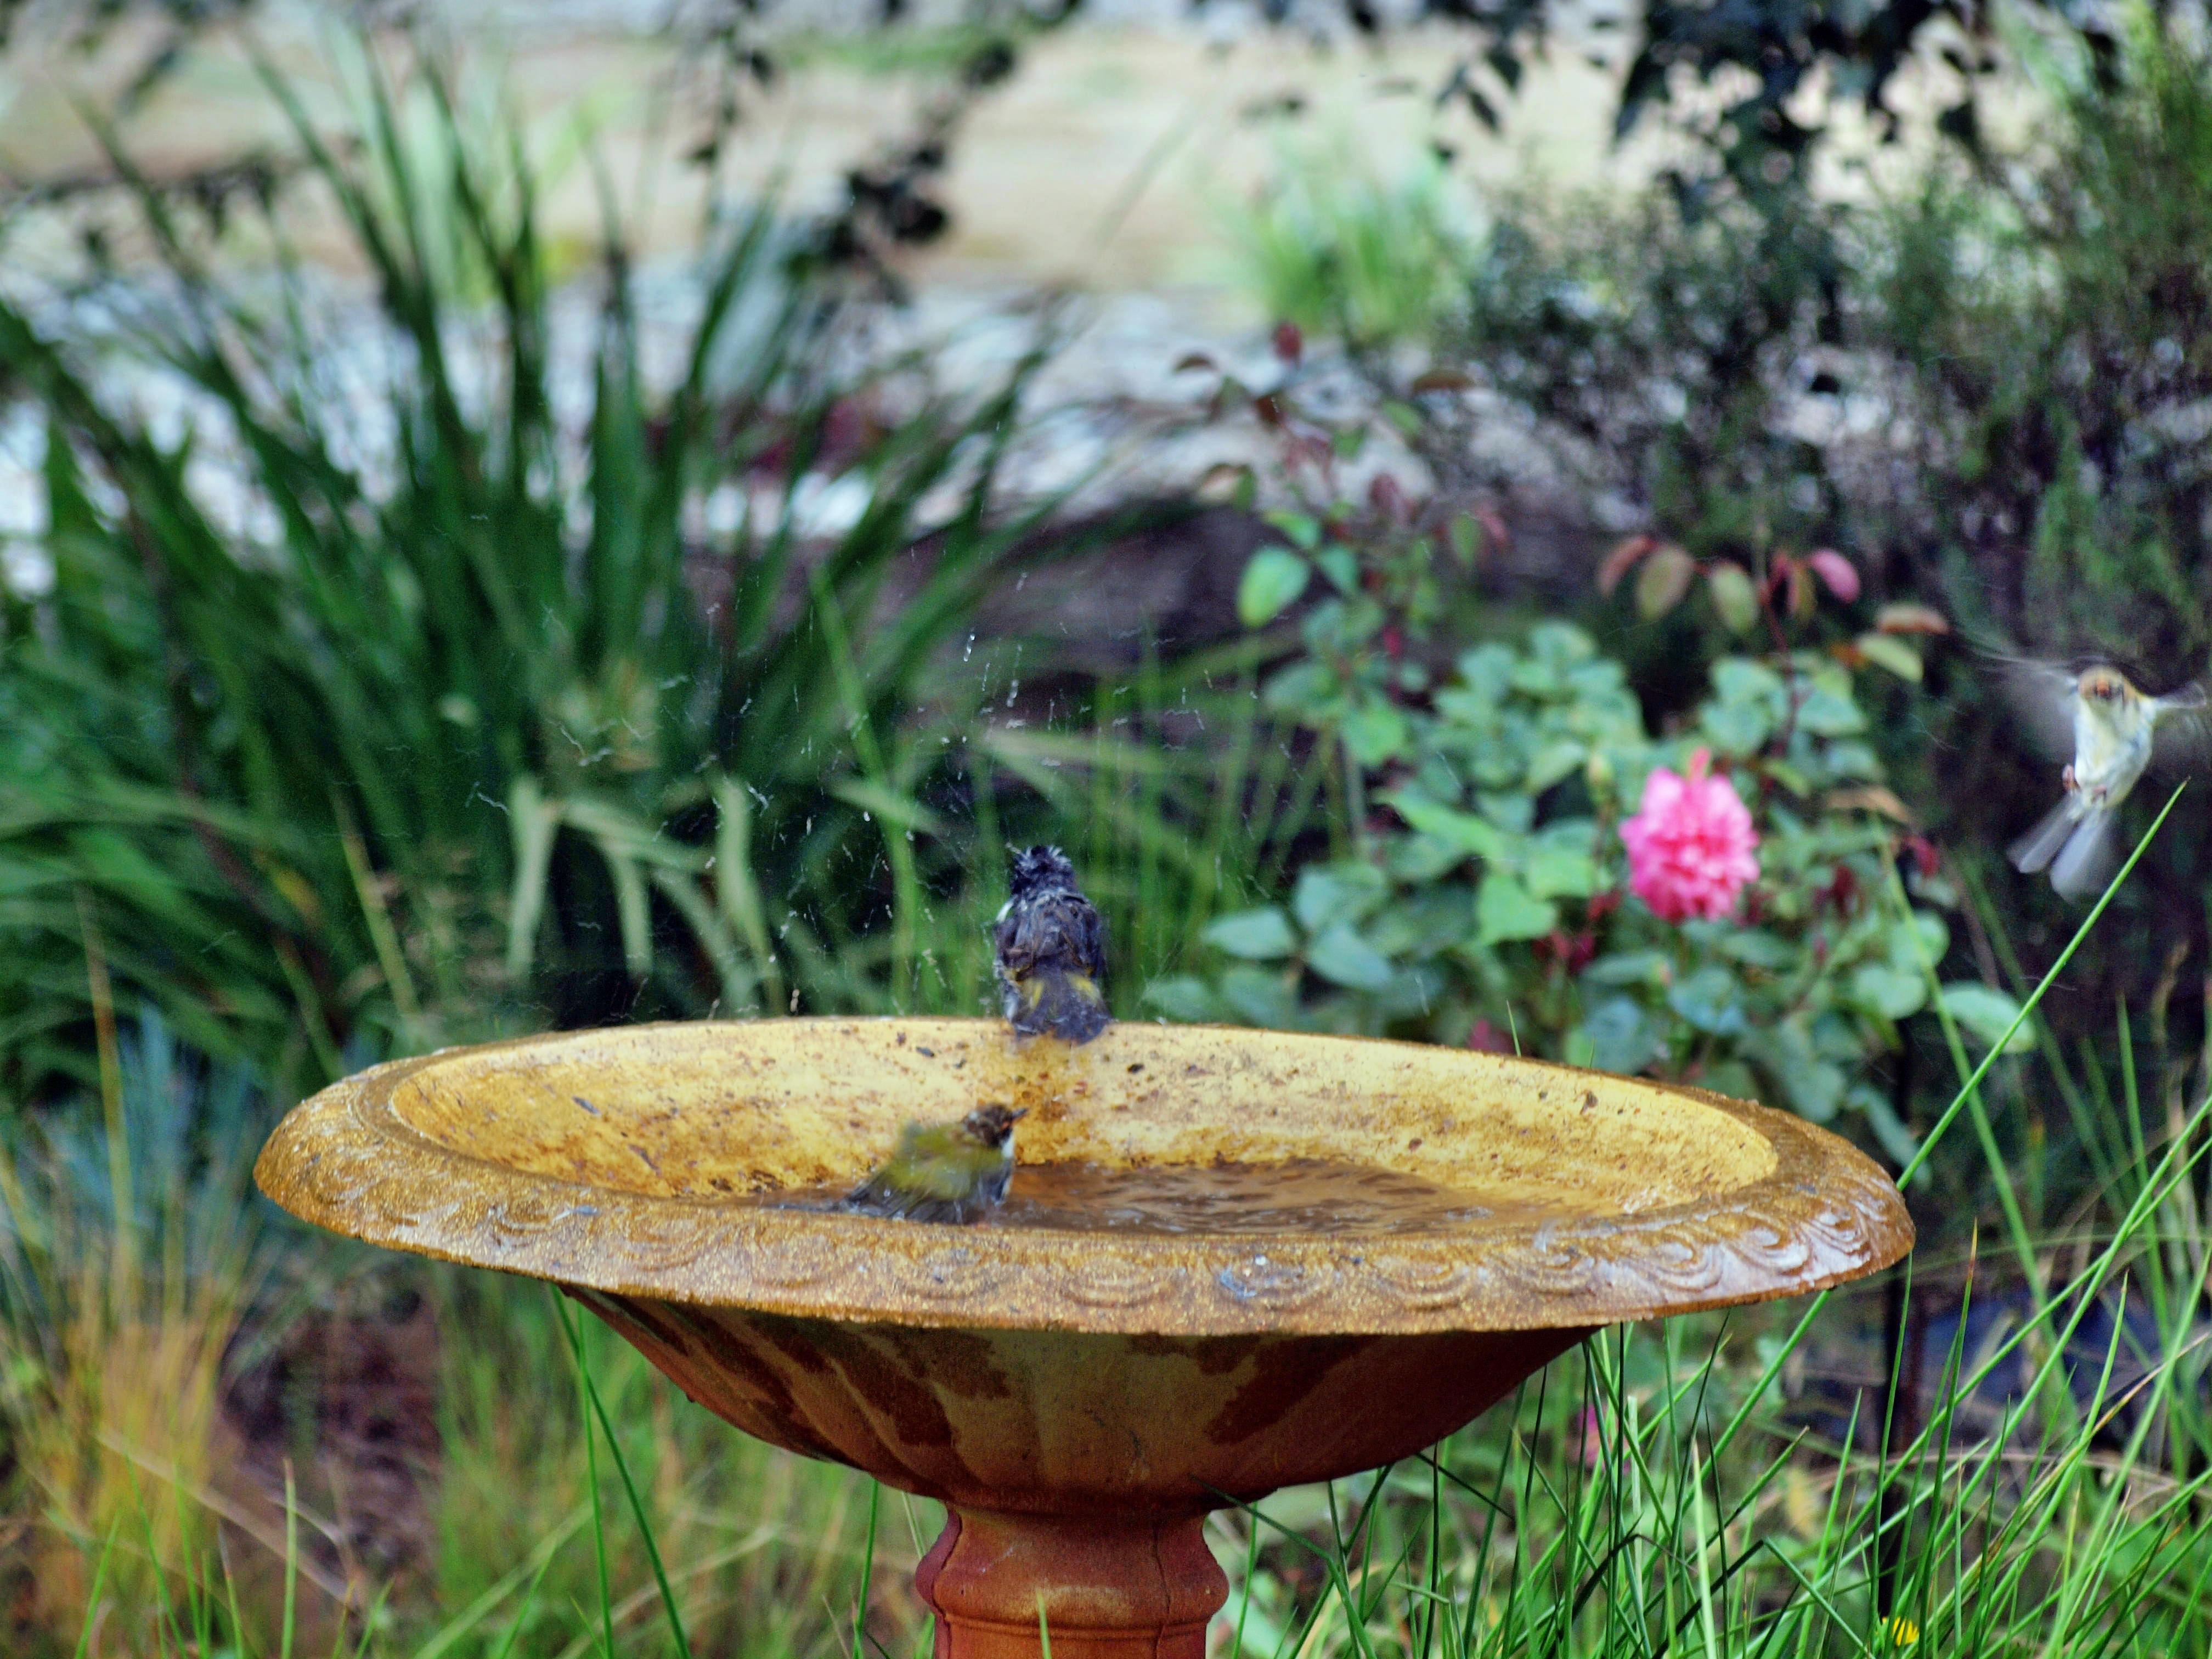 This should be Bird-bath-24.jpeg.  Is it missing?